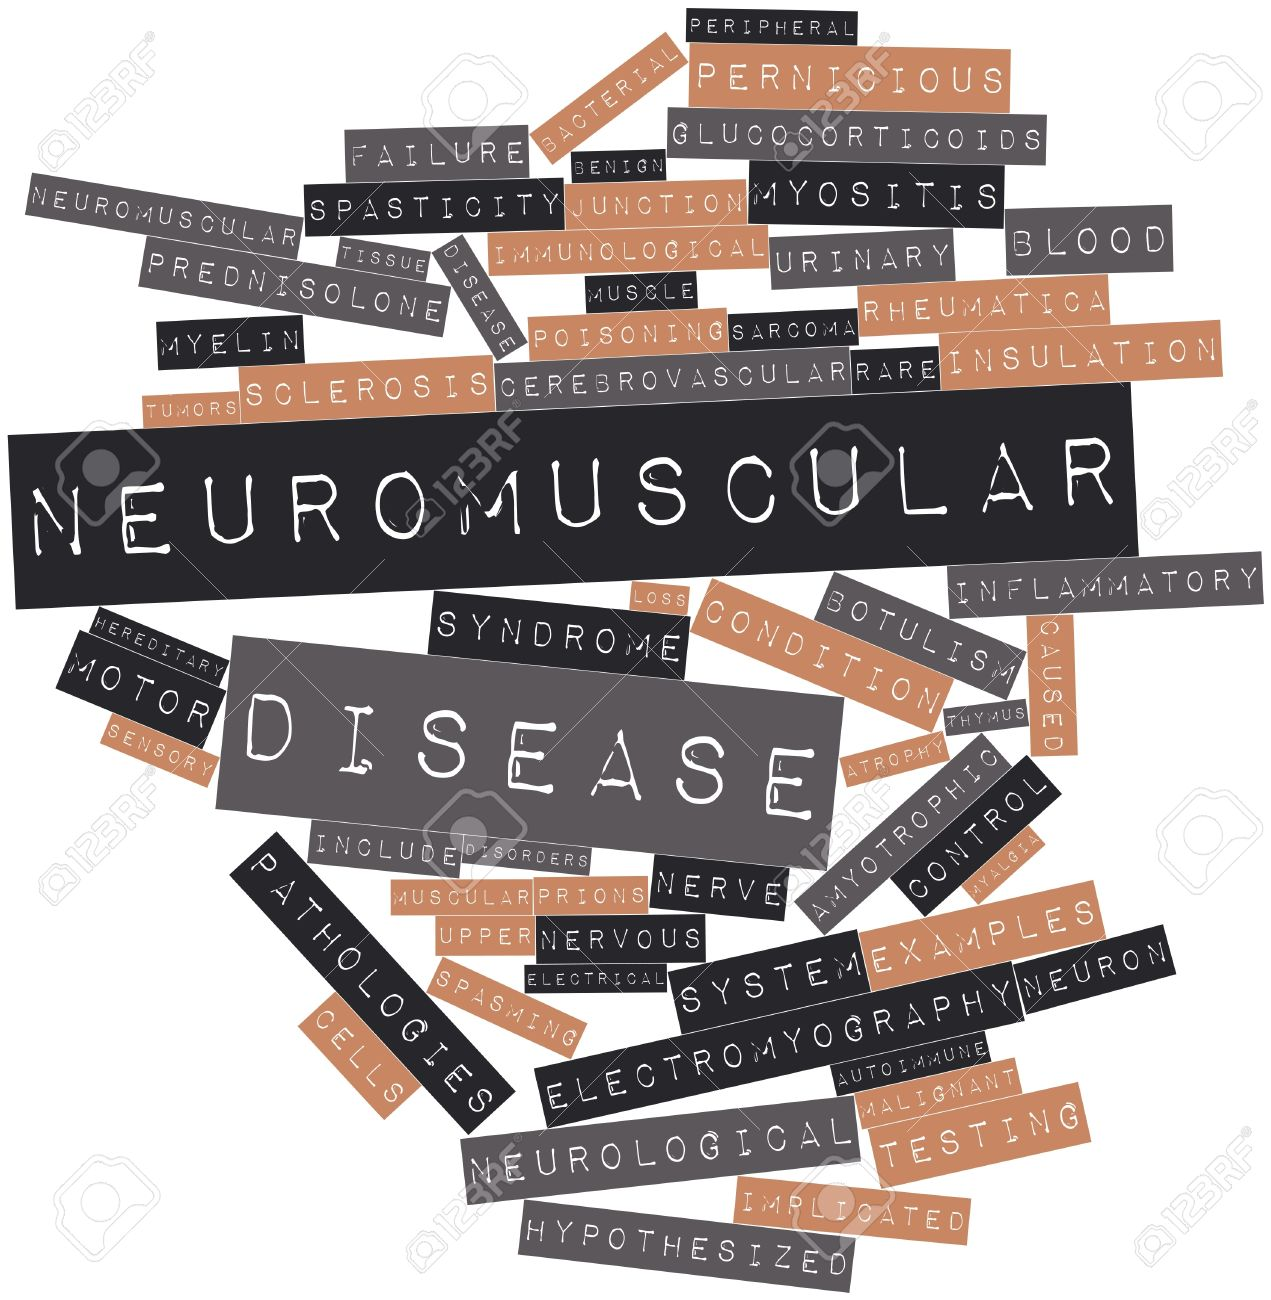 Neuromuscular Disorders Photo